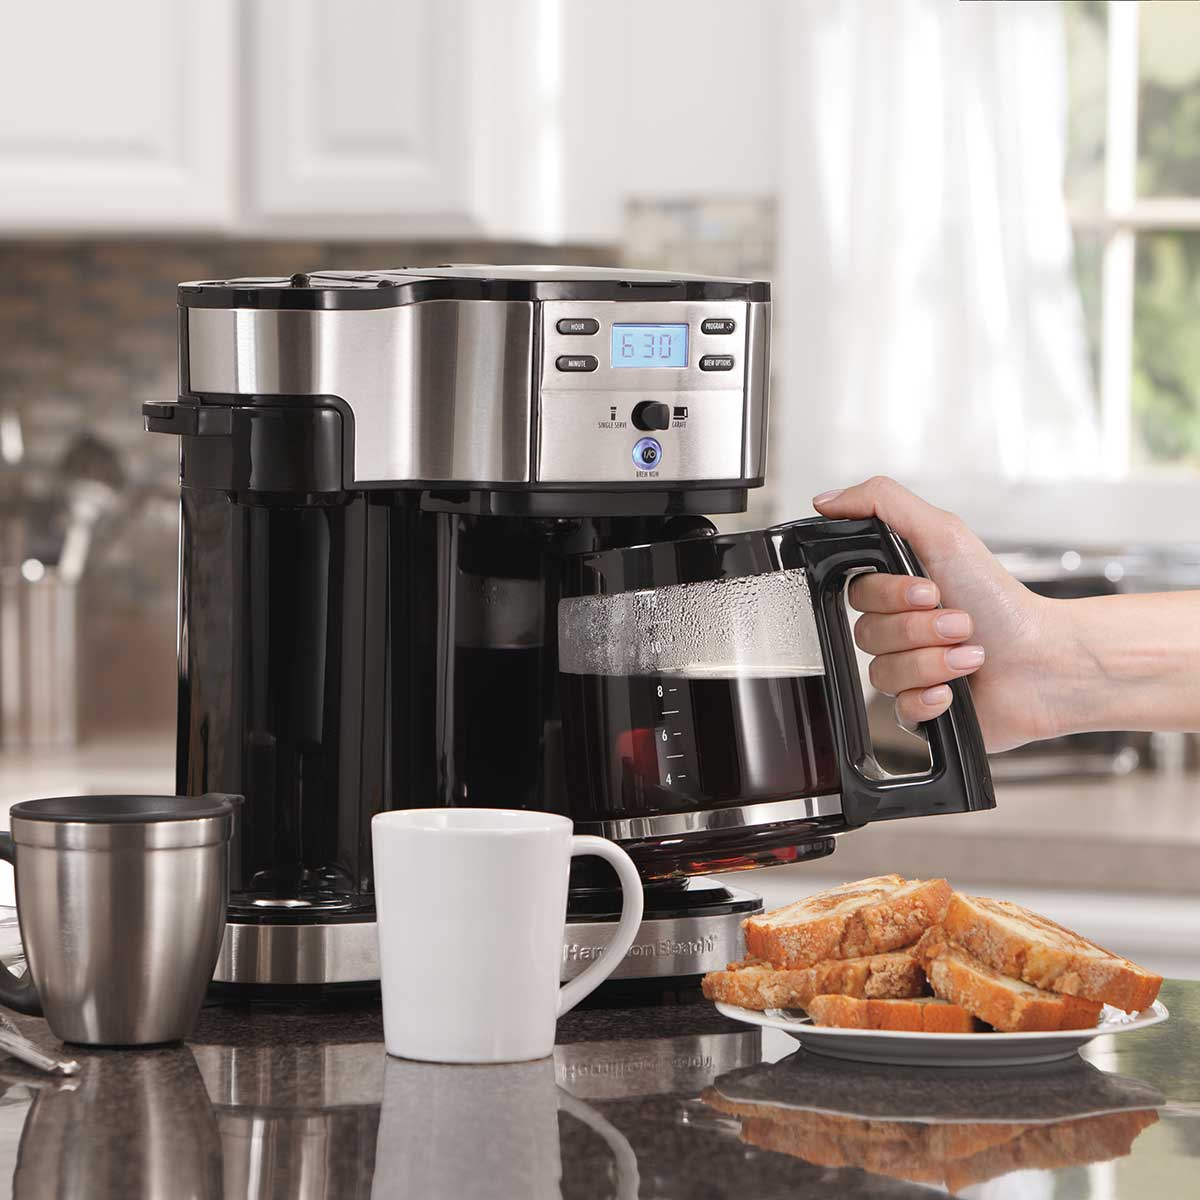 2-Way Coffee Maker with 12-Cup Carafe & Pod Brewing, Black & Stainless (49980Z)